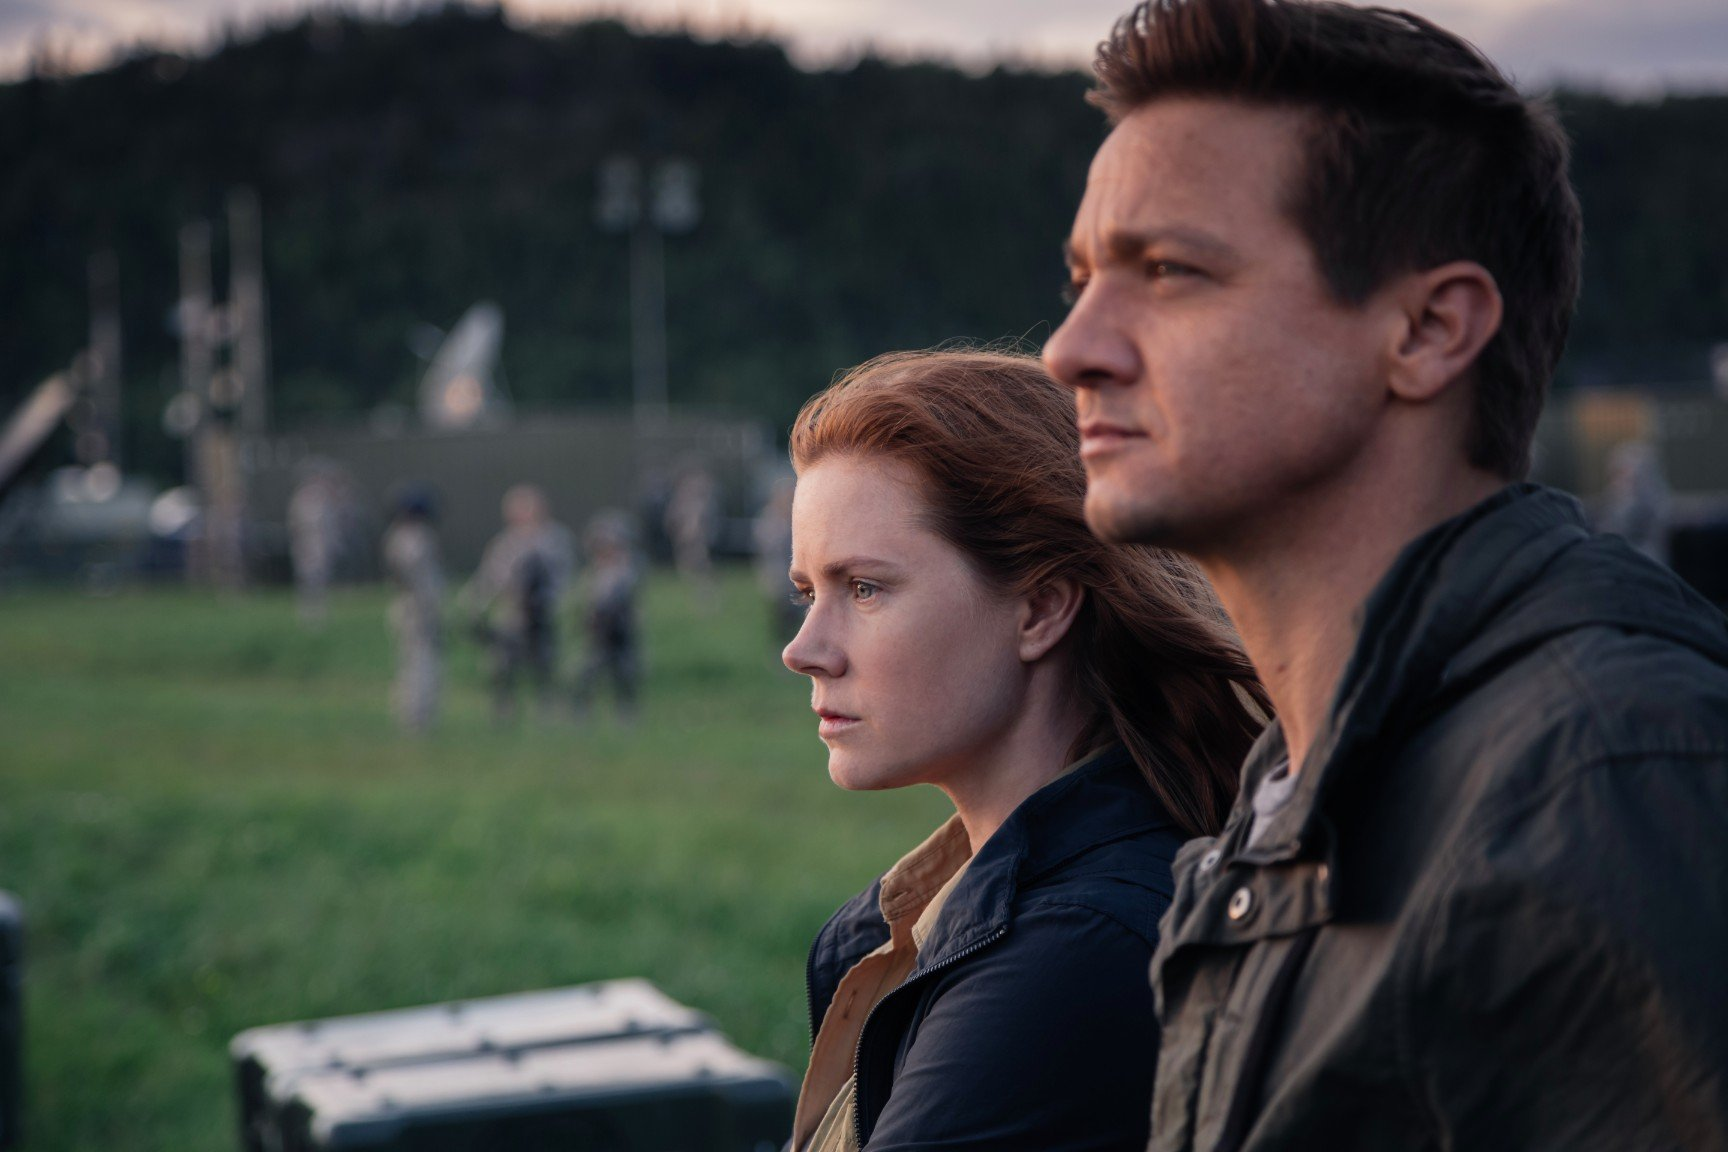 Arrival Scribe Eric Heisserer Reflects On How Interstellar Forced Him To Tweak The Film's Ending